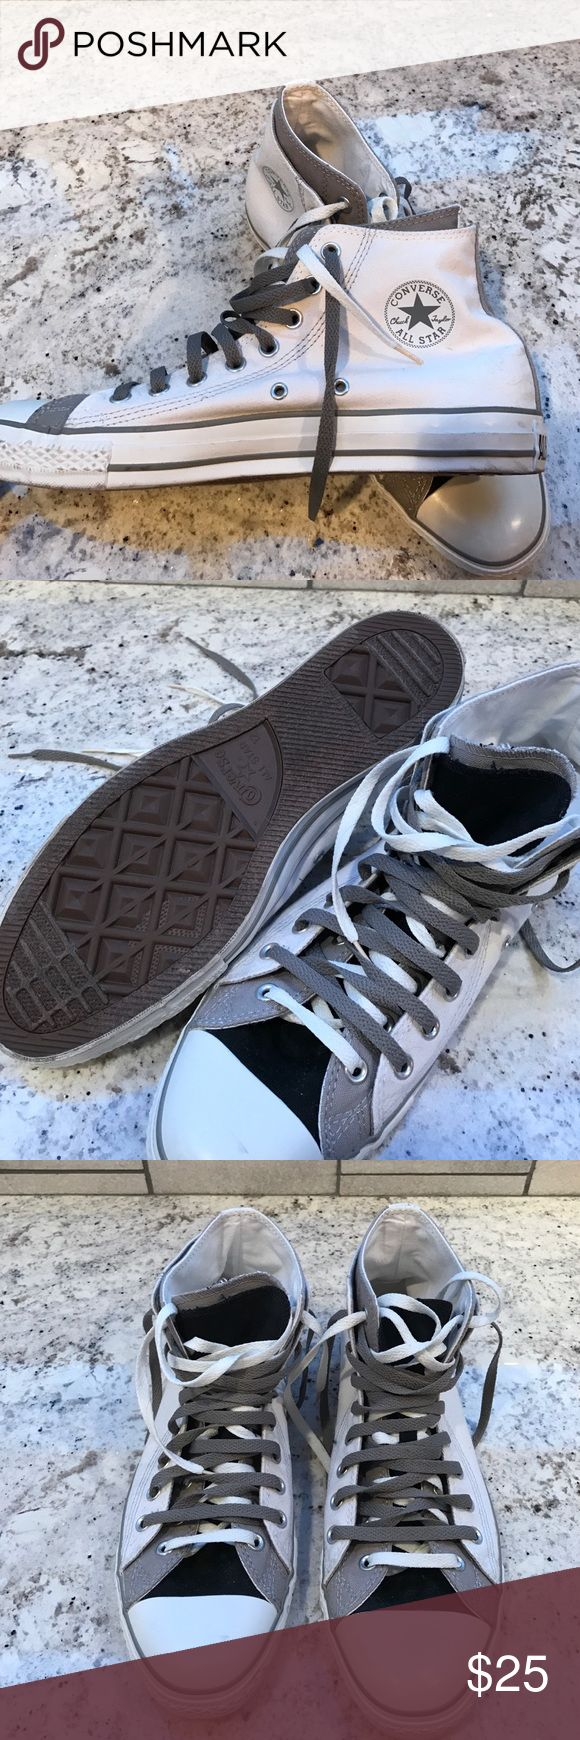 Size 12 Converse All Star Chuck Taylor high tops. Men's size 12. Two tongue (black/gray). Converse All Star. Worn twice. Color is white with gray and black tongues - 2 sets of laces gray and white per shoe. Smoke free home. Converse Shoes Sneakers